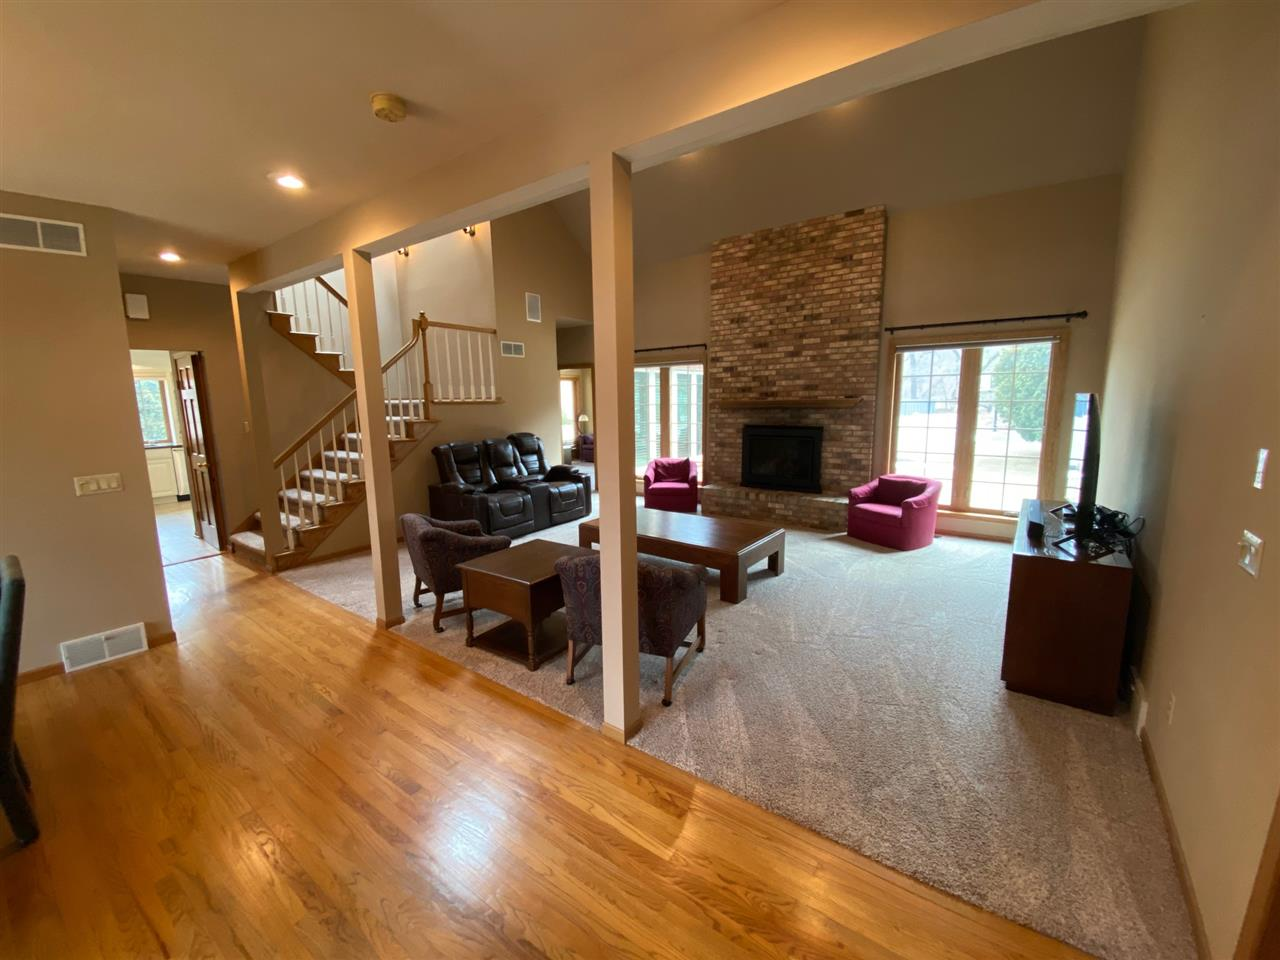 6219 Stonefield Rd, Middleton, Wisconsin 53562, 3 Bedrooms Bedrooms, ,4 BathroomsBathrooms,Single Family,For Sale,6219 Stonefield Rd,1.5,1903553